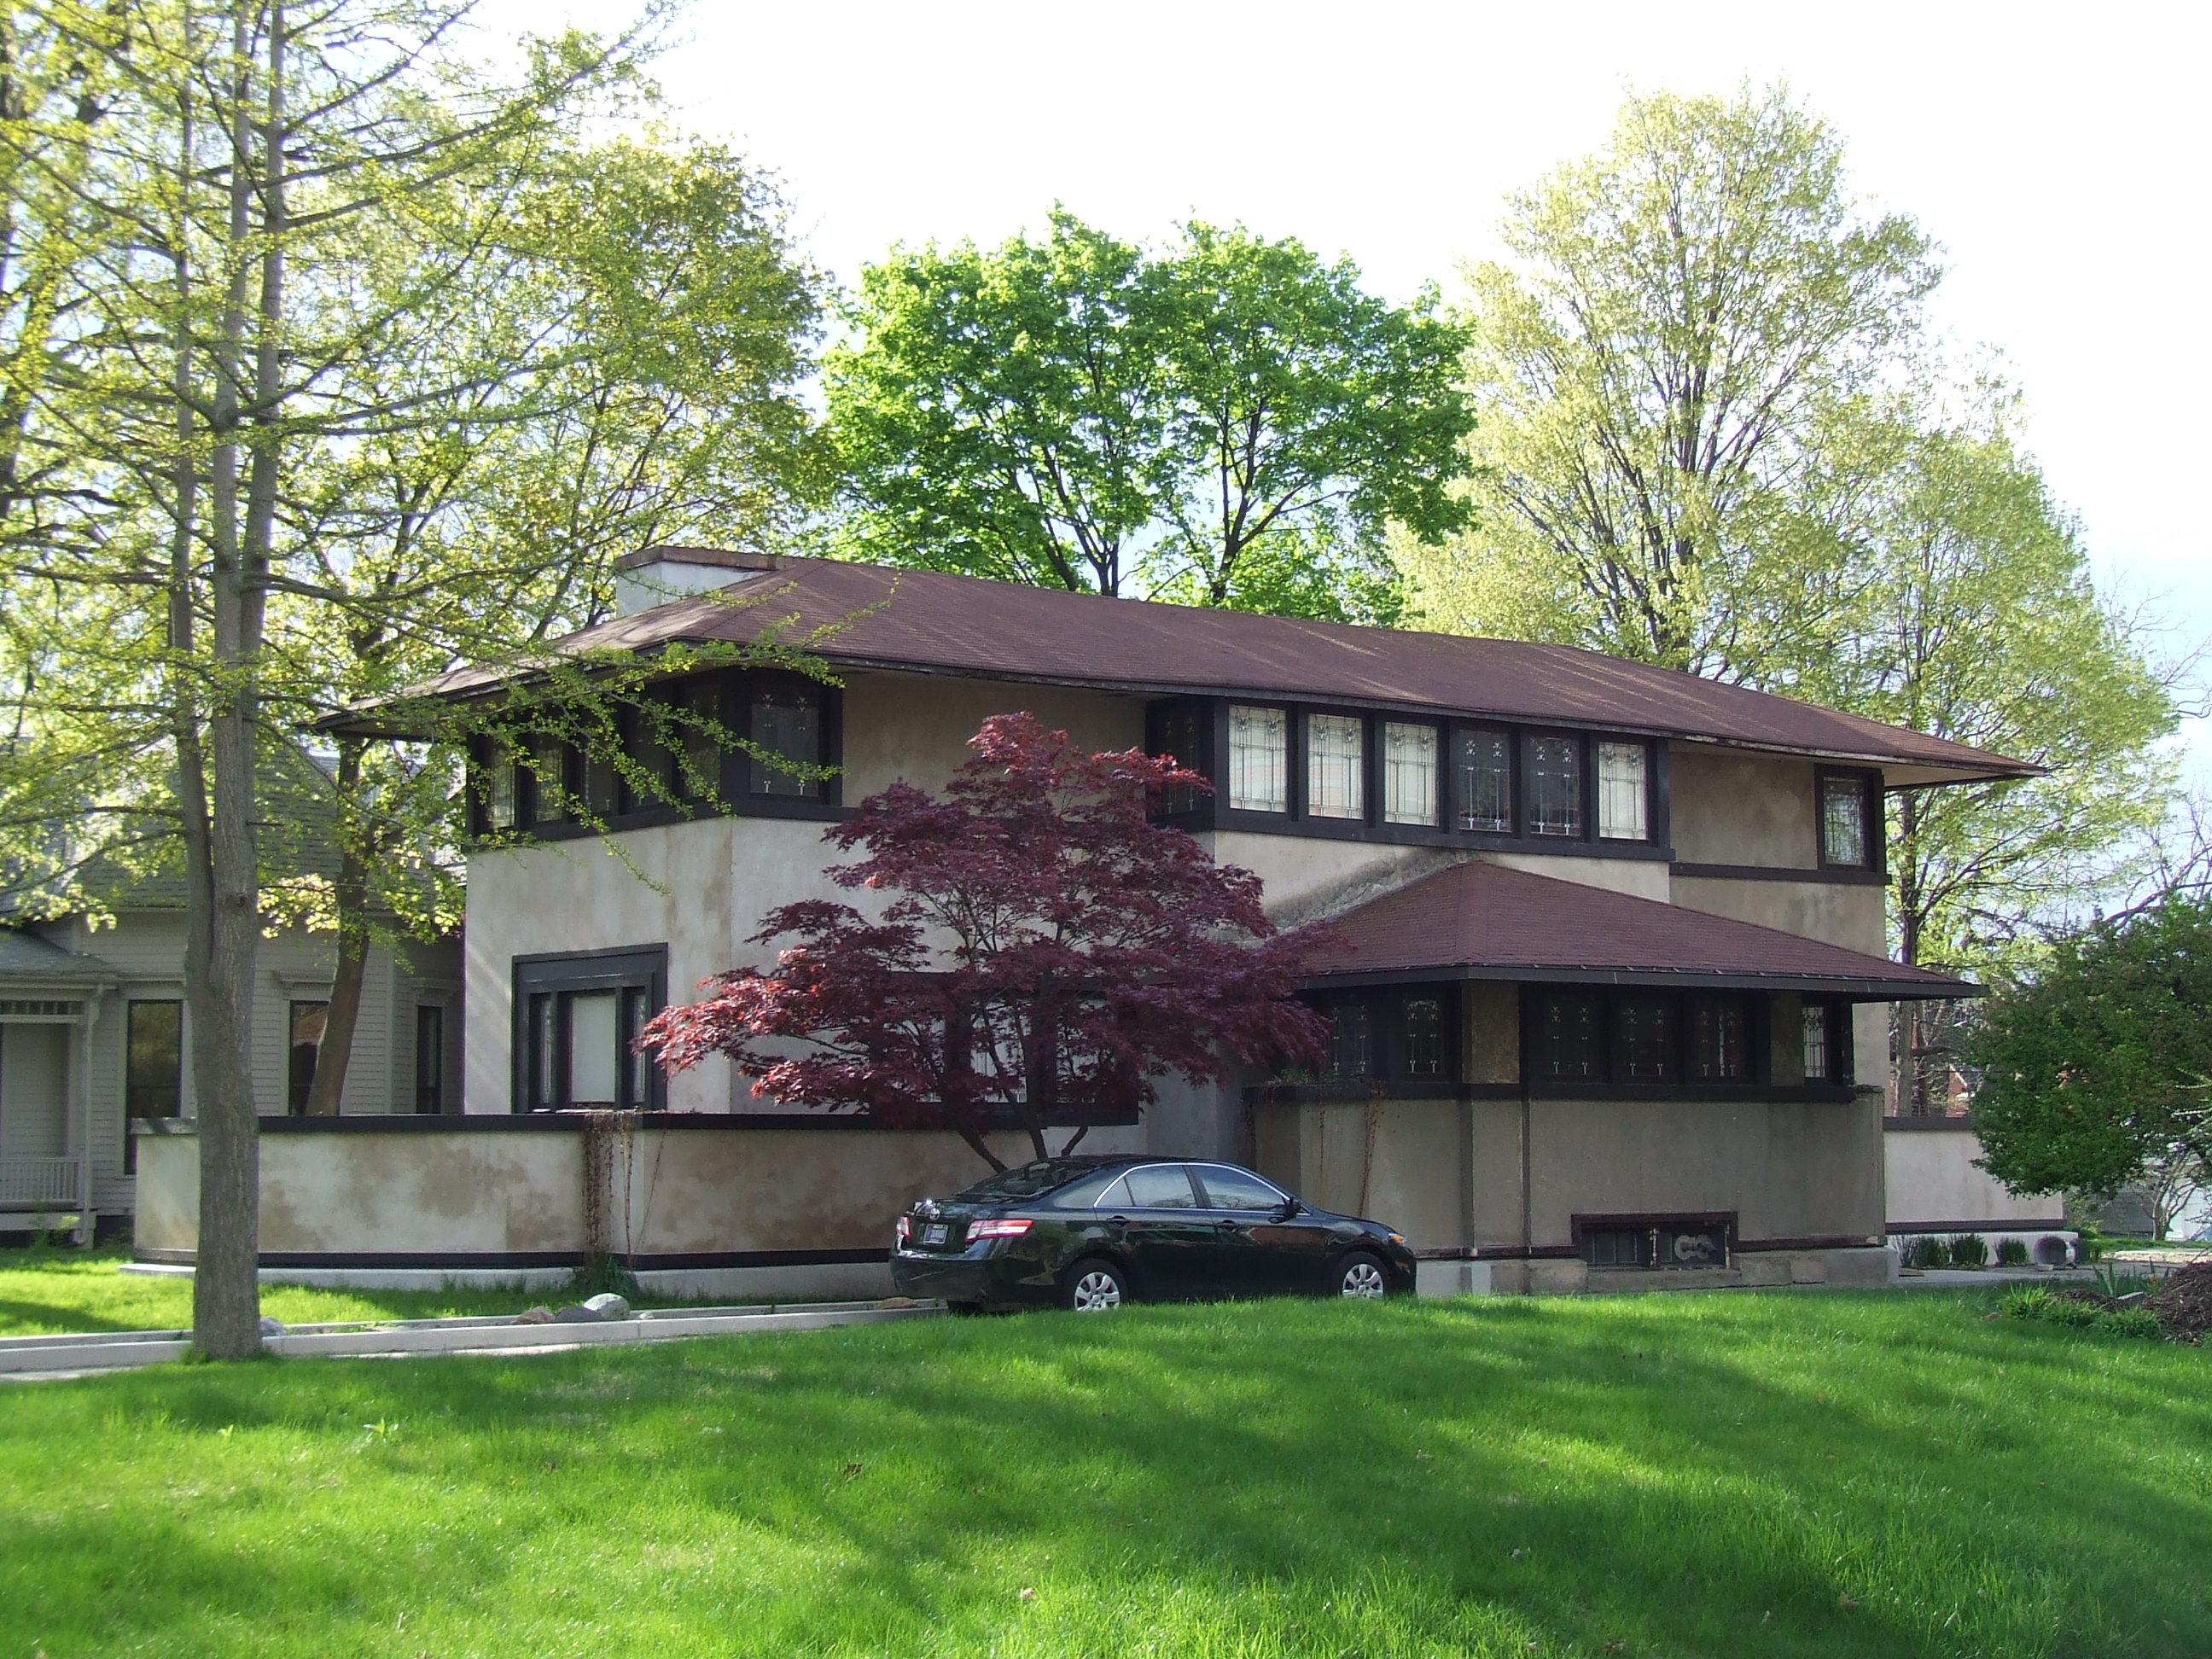 frank lloyd wright ruined american life with the turn of the porch